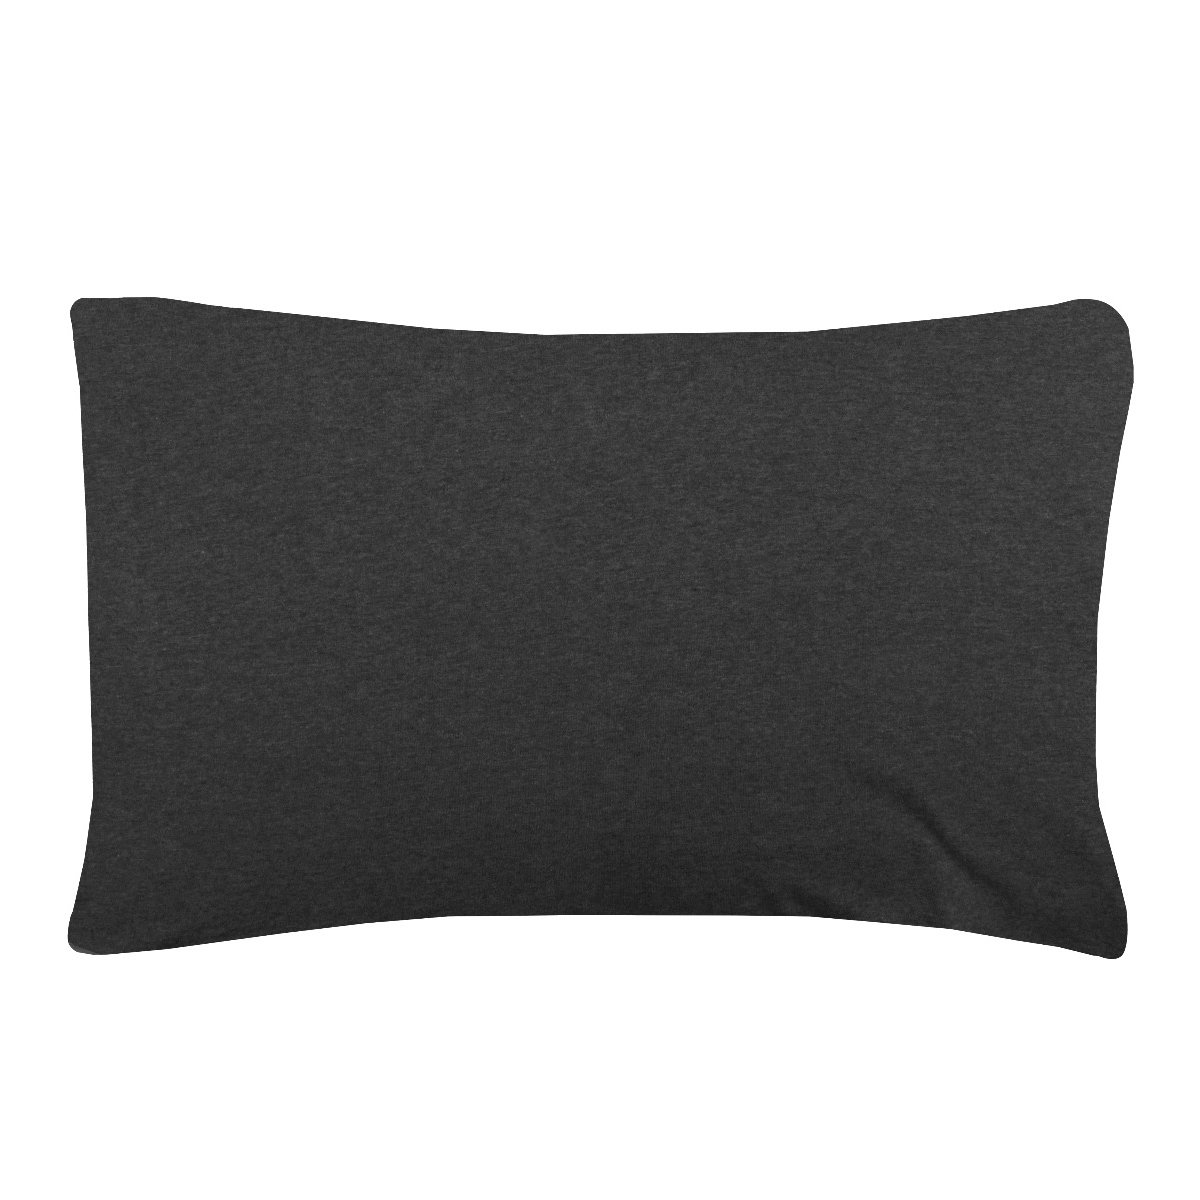 Jersey Melange Luxuriously Soft - Burnt Charcoal Pillowcase Pair